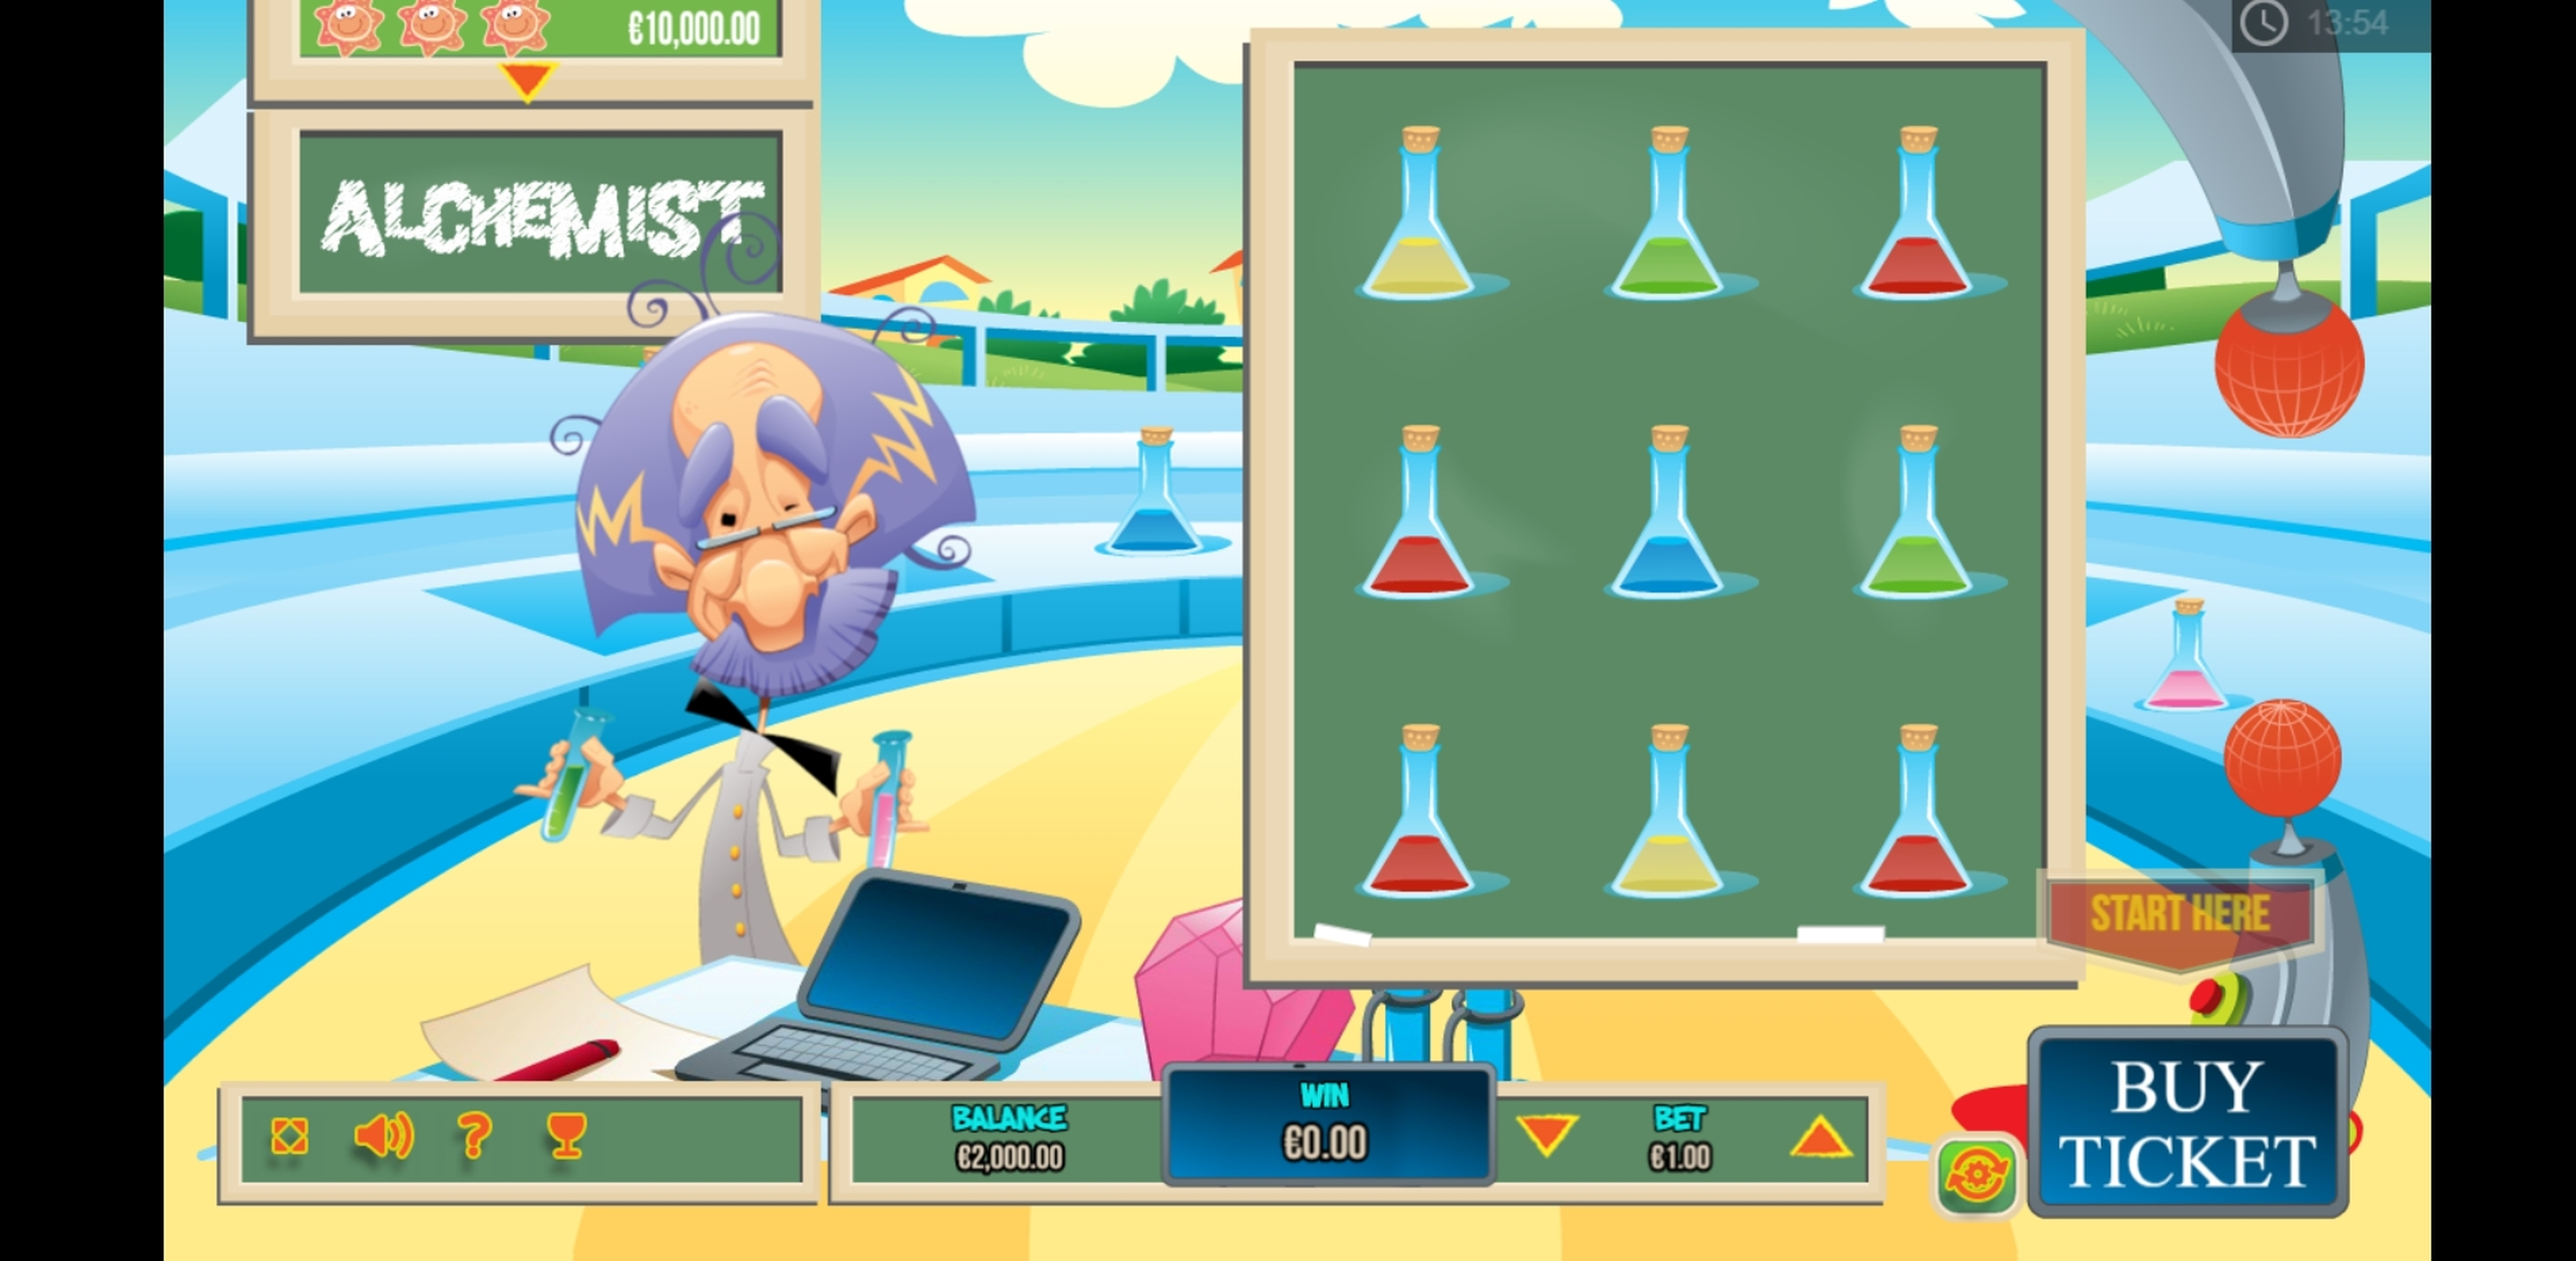 Reels in The Alchemist Scratch Slot Game by PariPlay